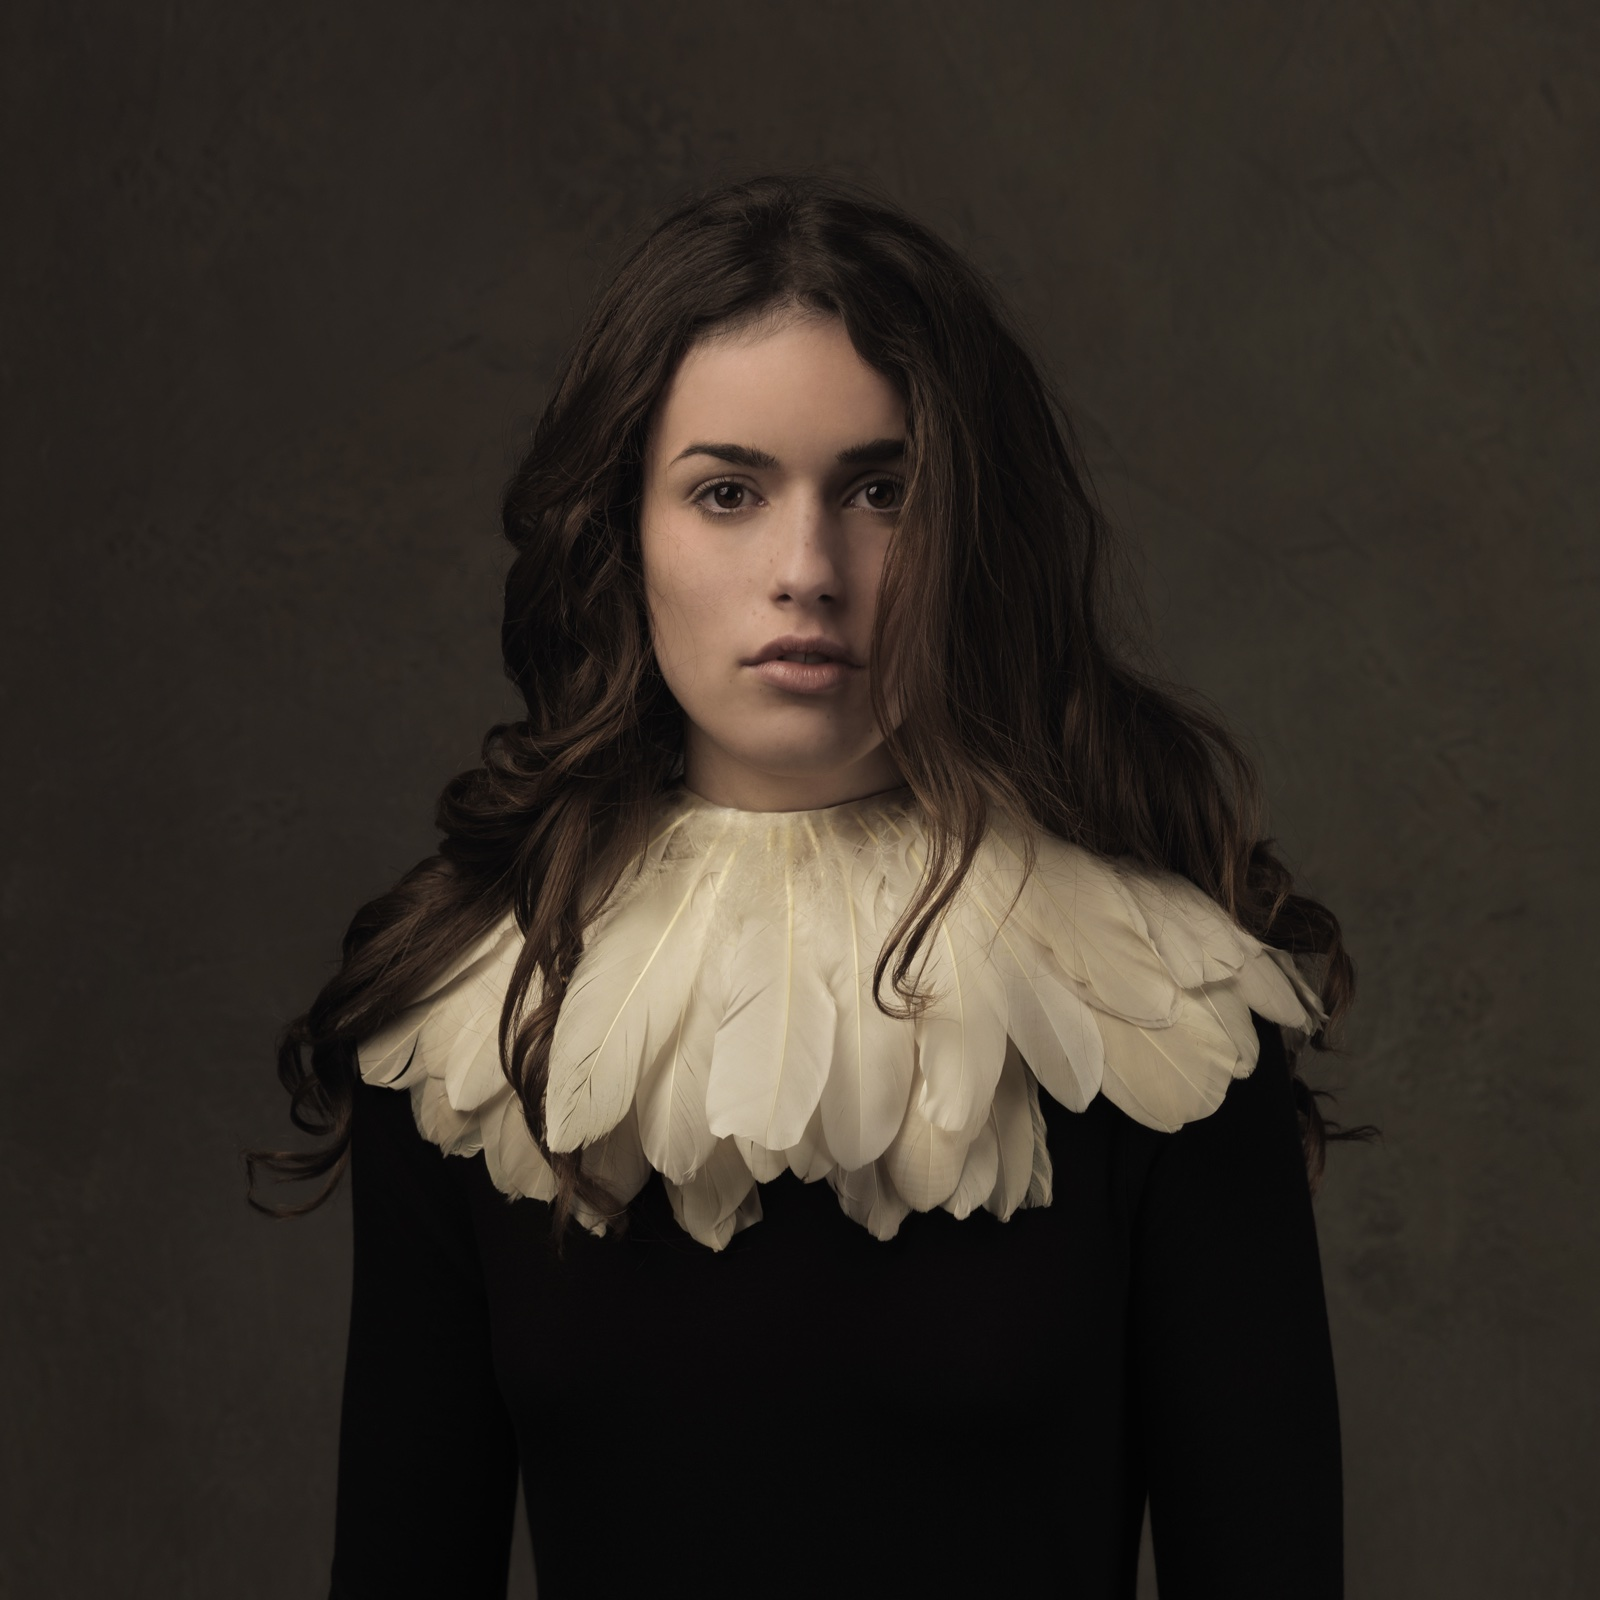 foto: © Marie Cecile Thijs - Girl with The Feather Collar 2014